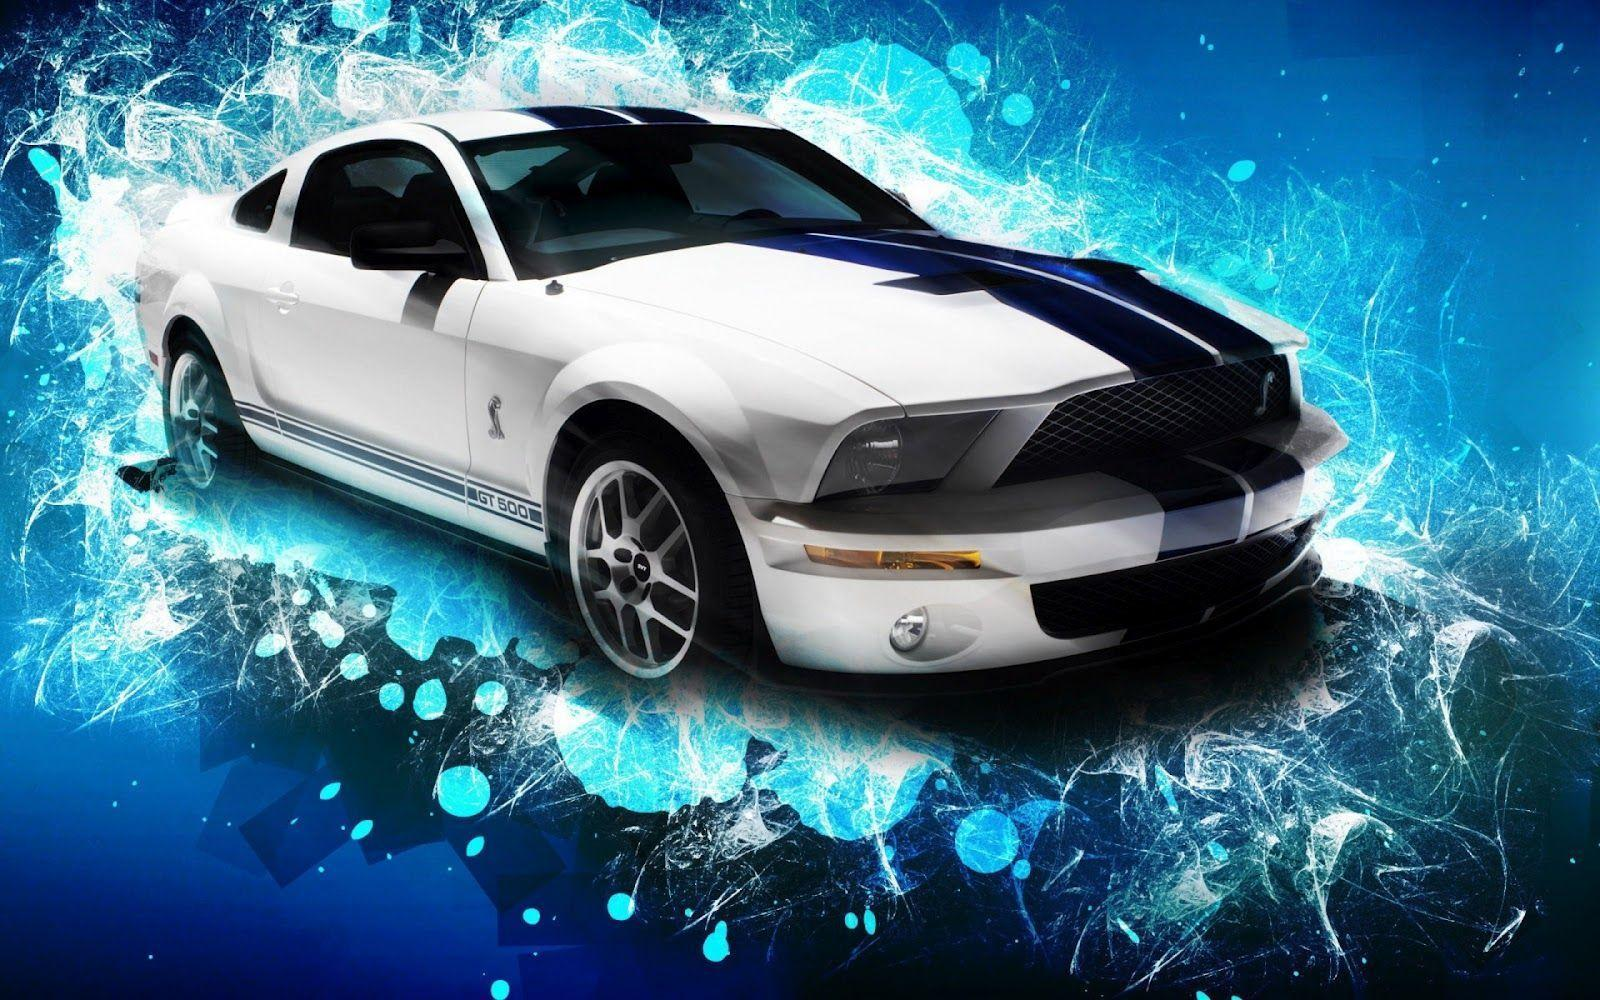 Wallpapers - HD Desktop Wallpapers Free Online: Car Wallpapers